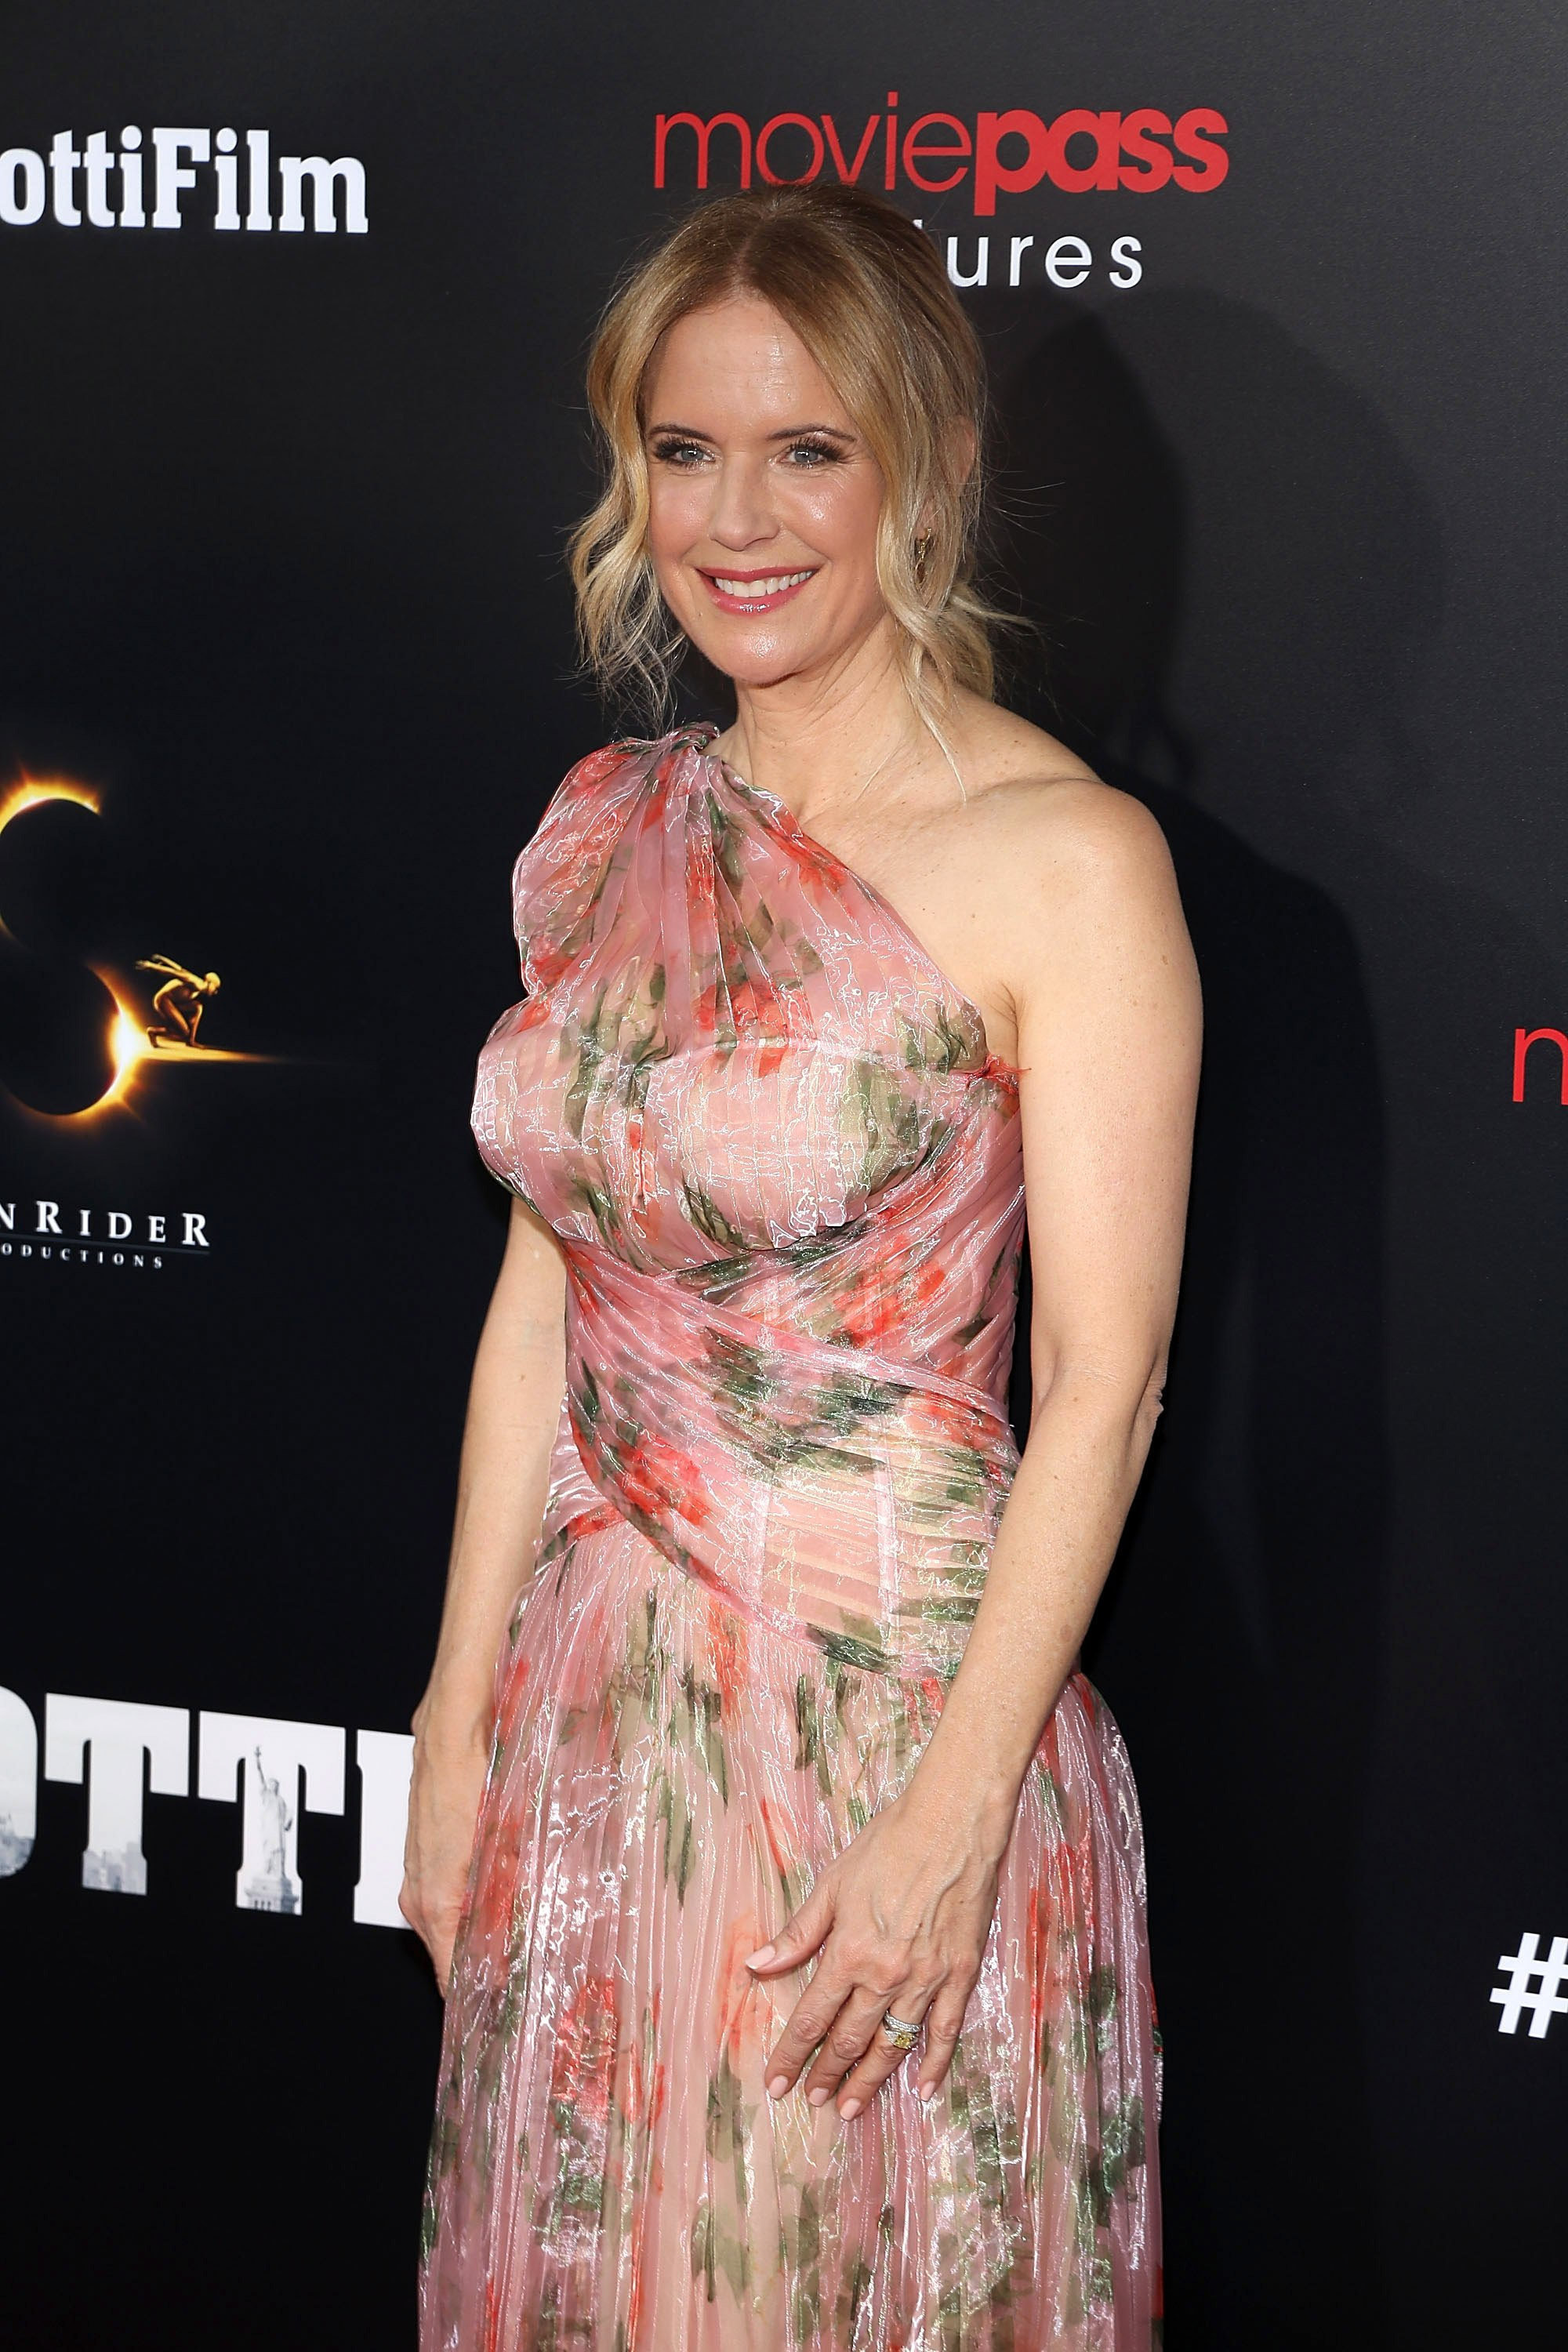 Image Source: Getty Images/Kelly at a movie premiere event